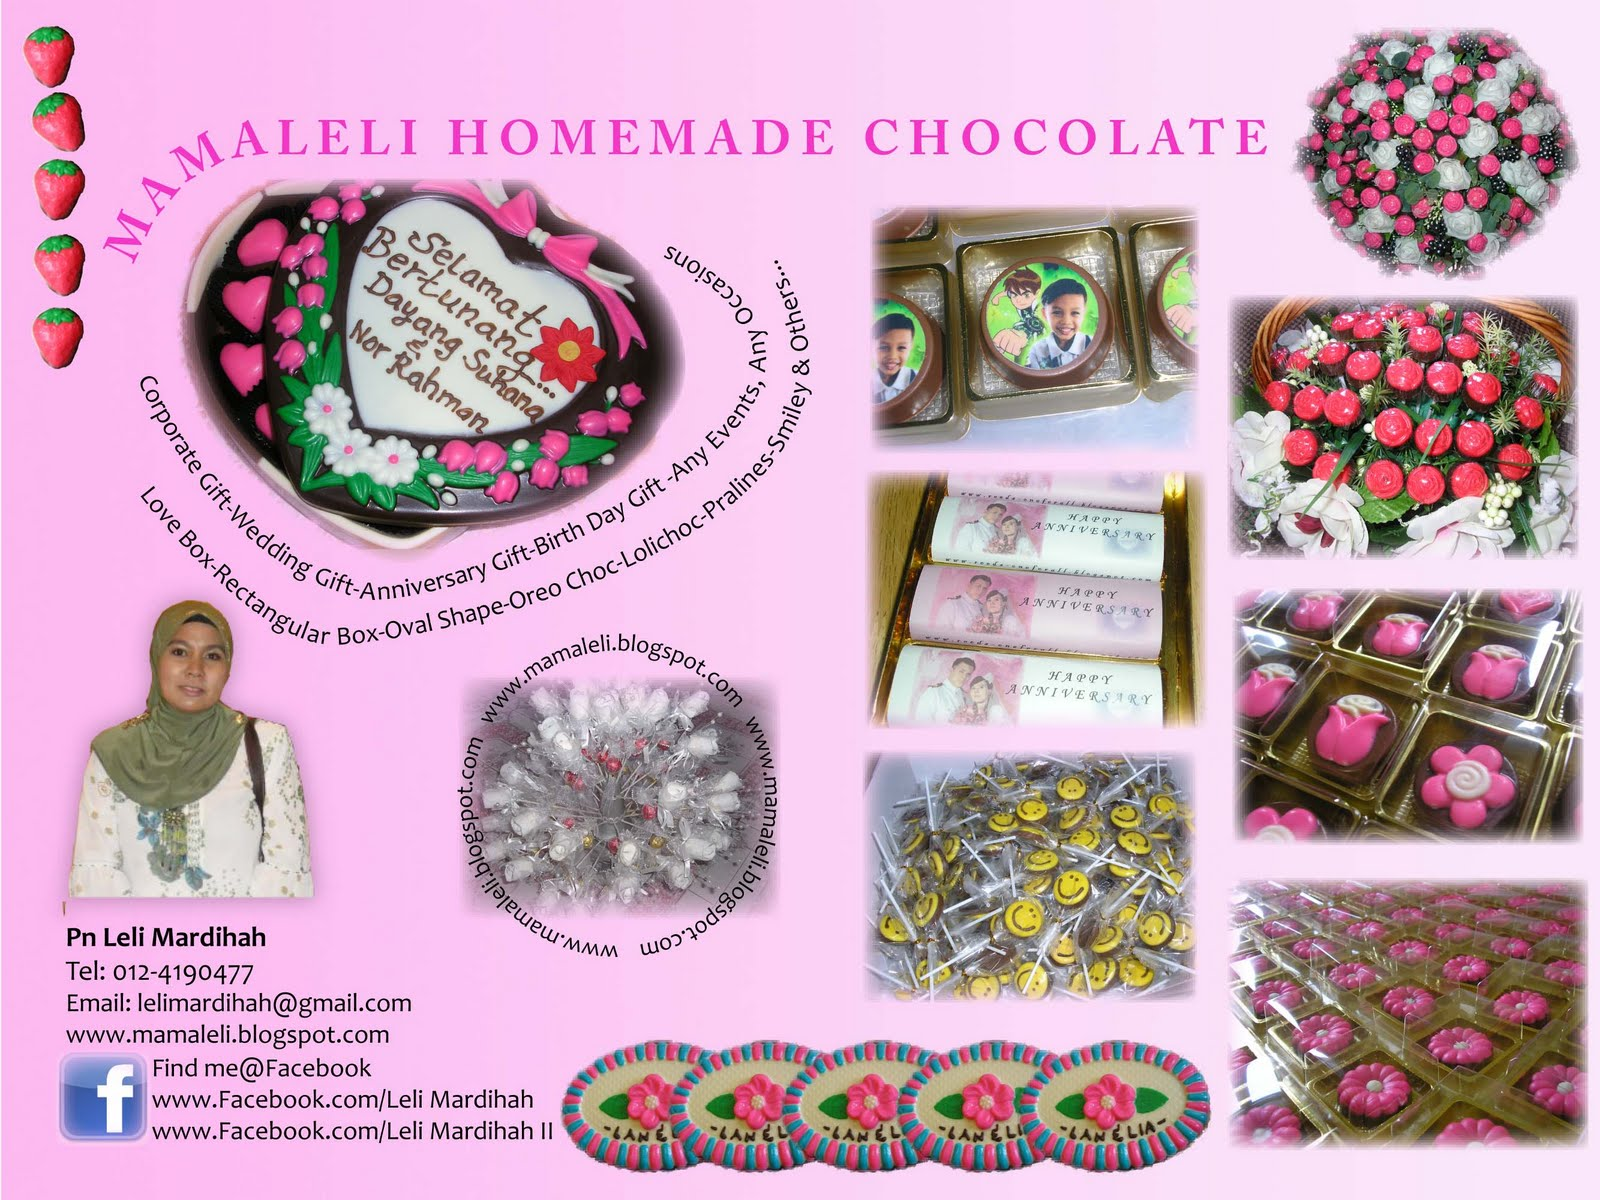 Mamaleli Homemade Chocolate